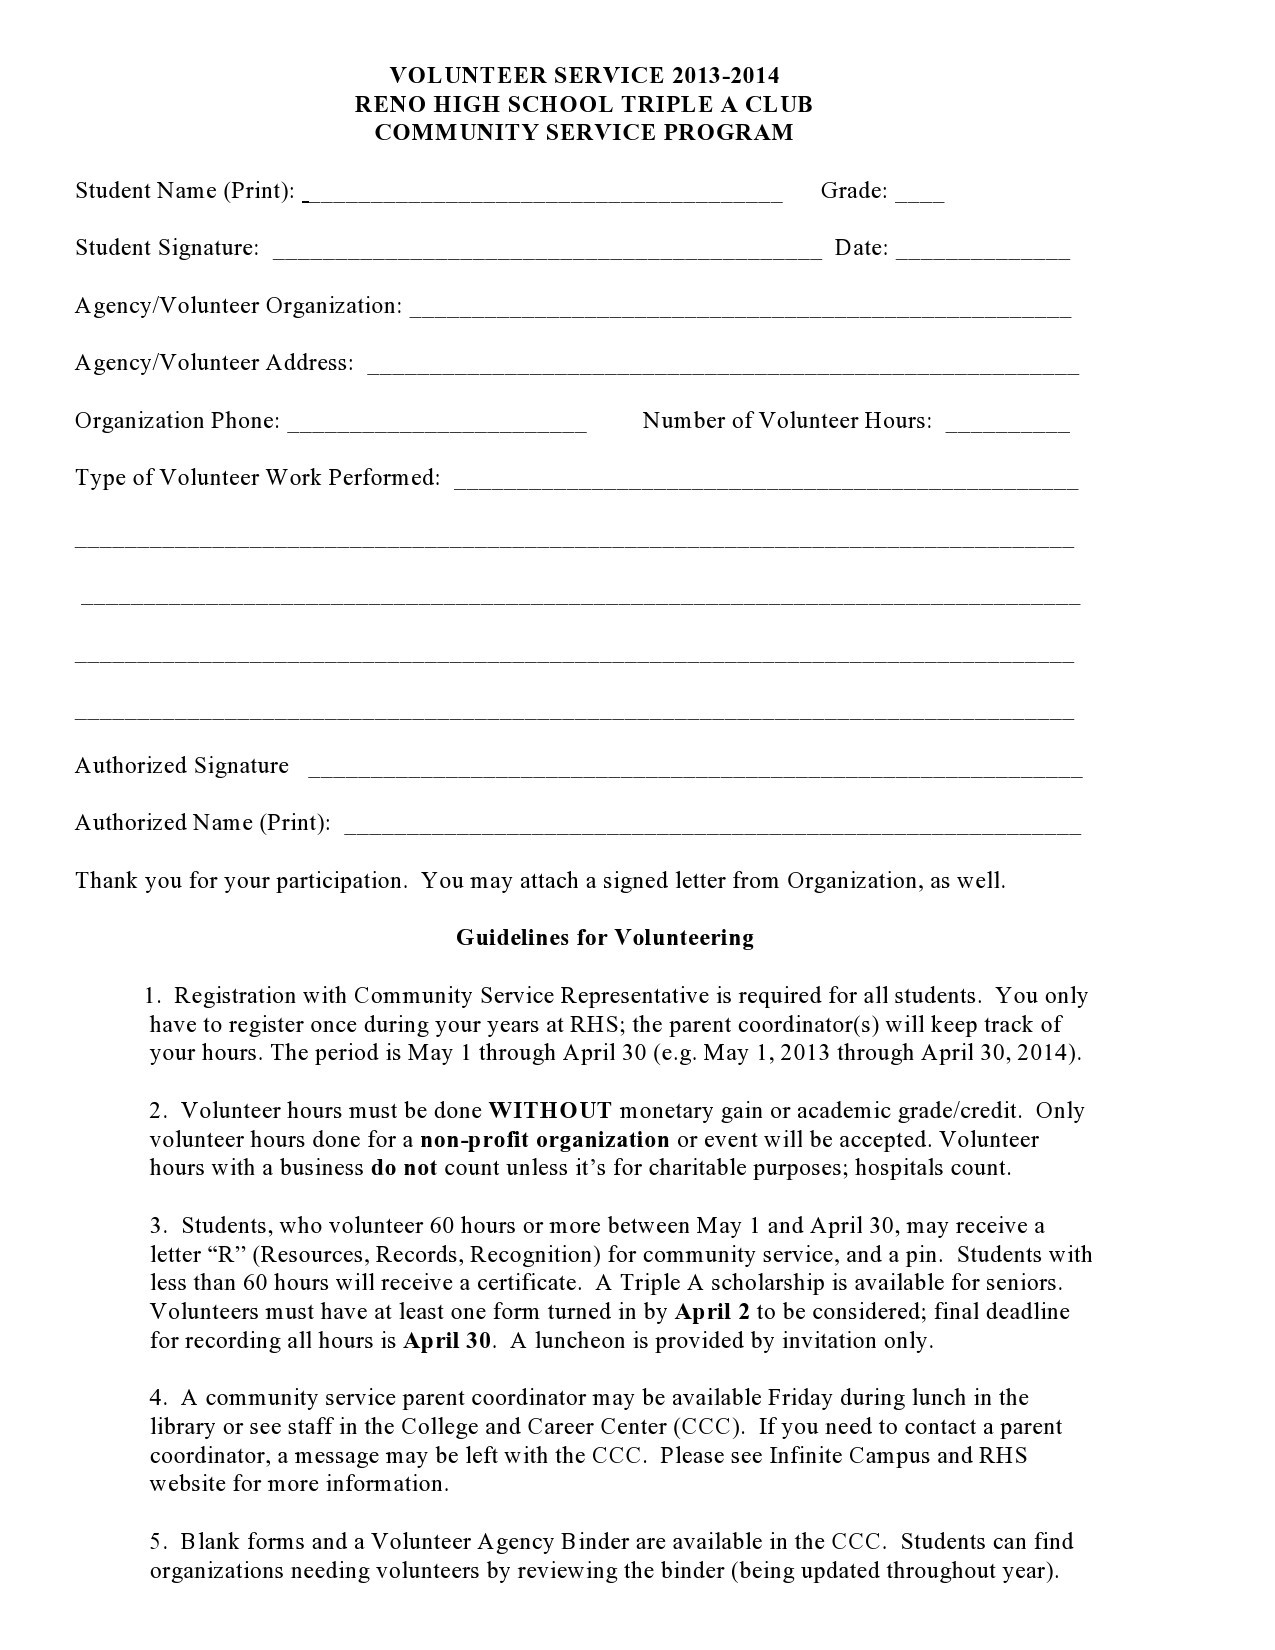 Free community service form 10